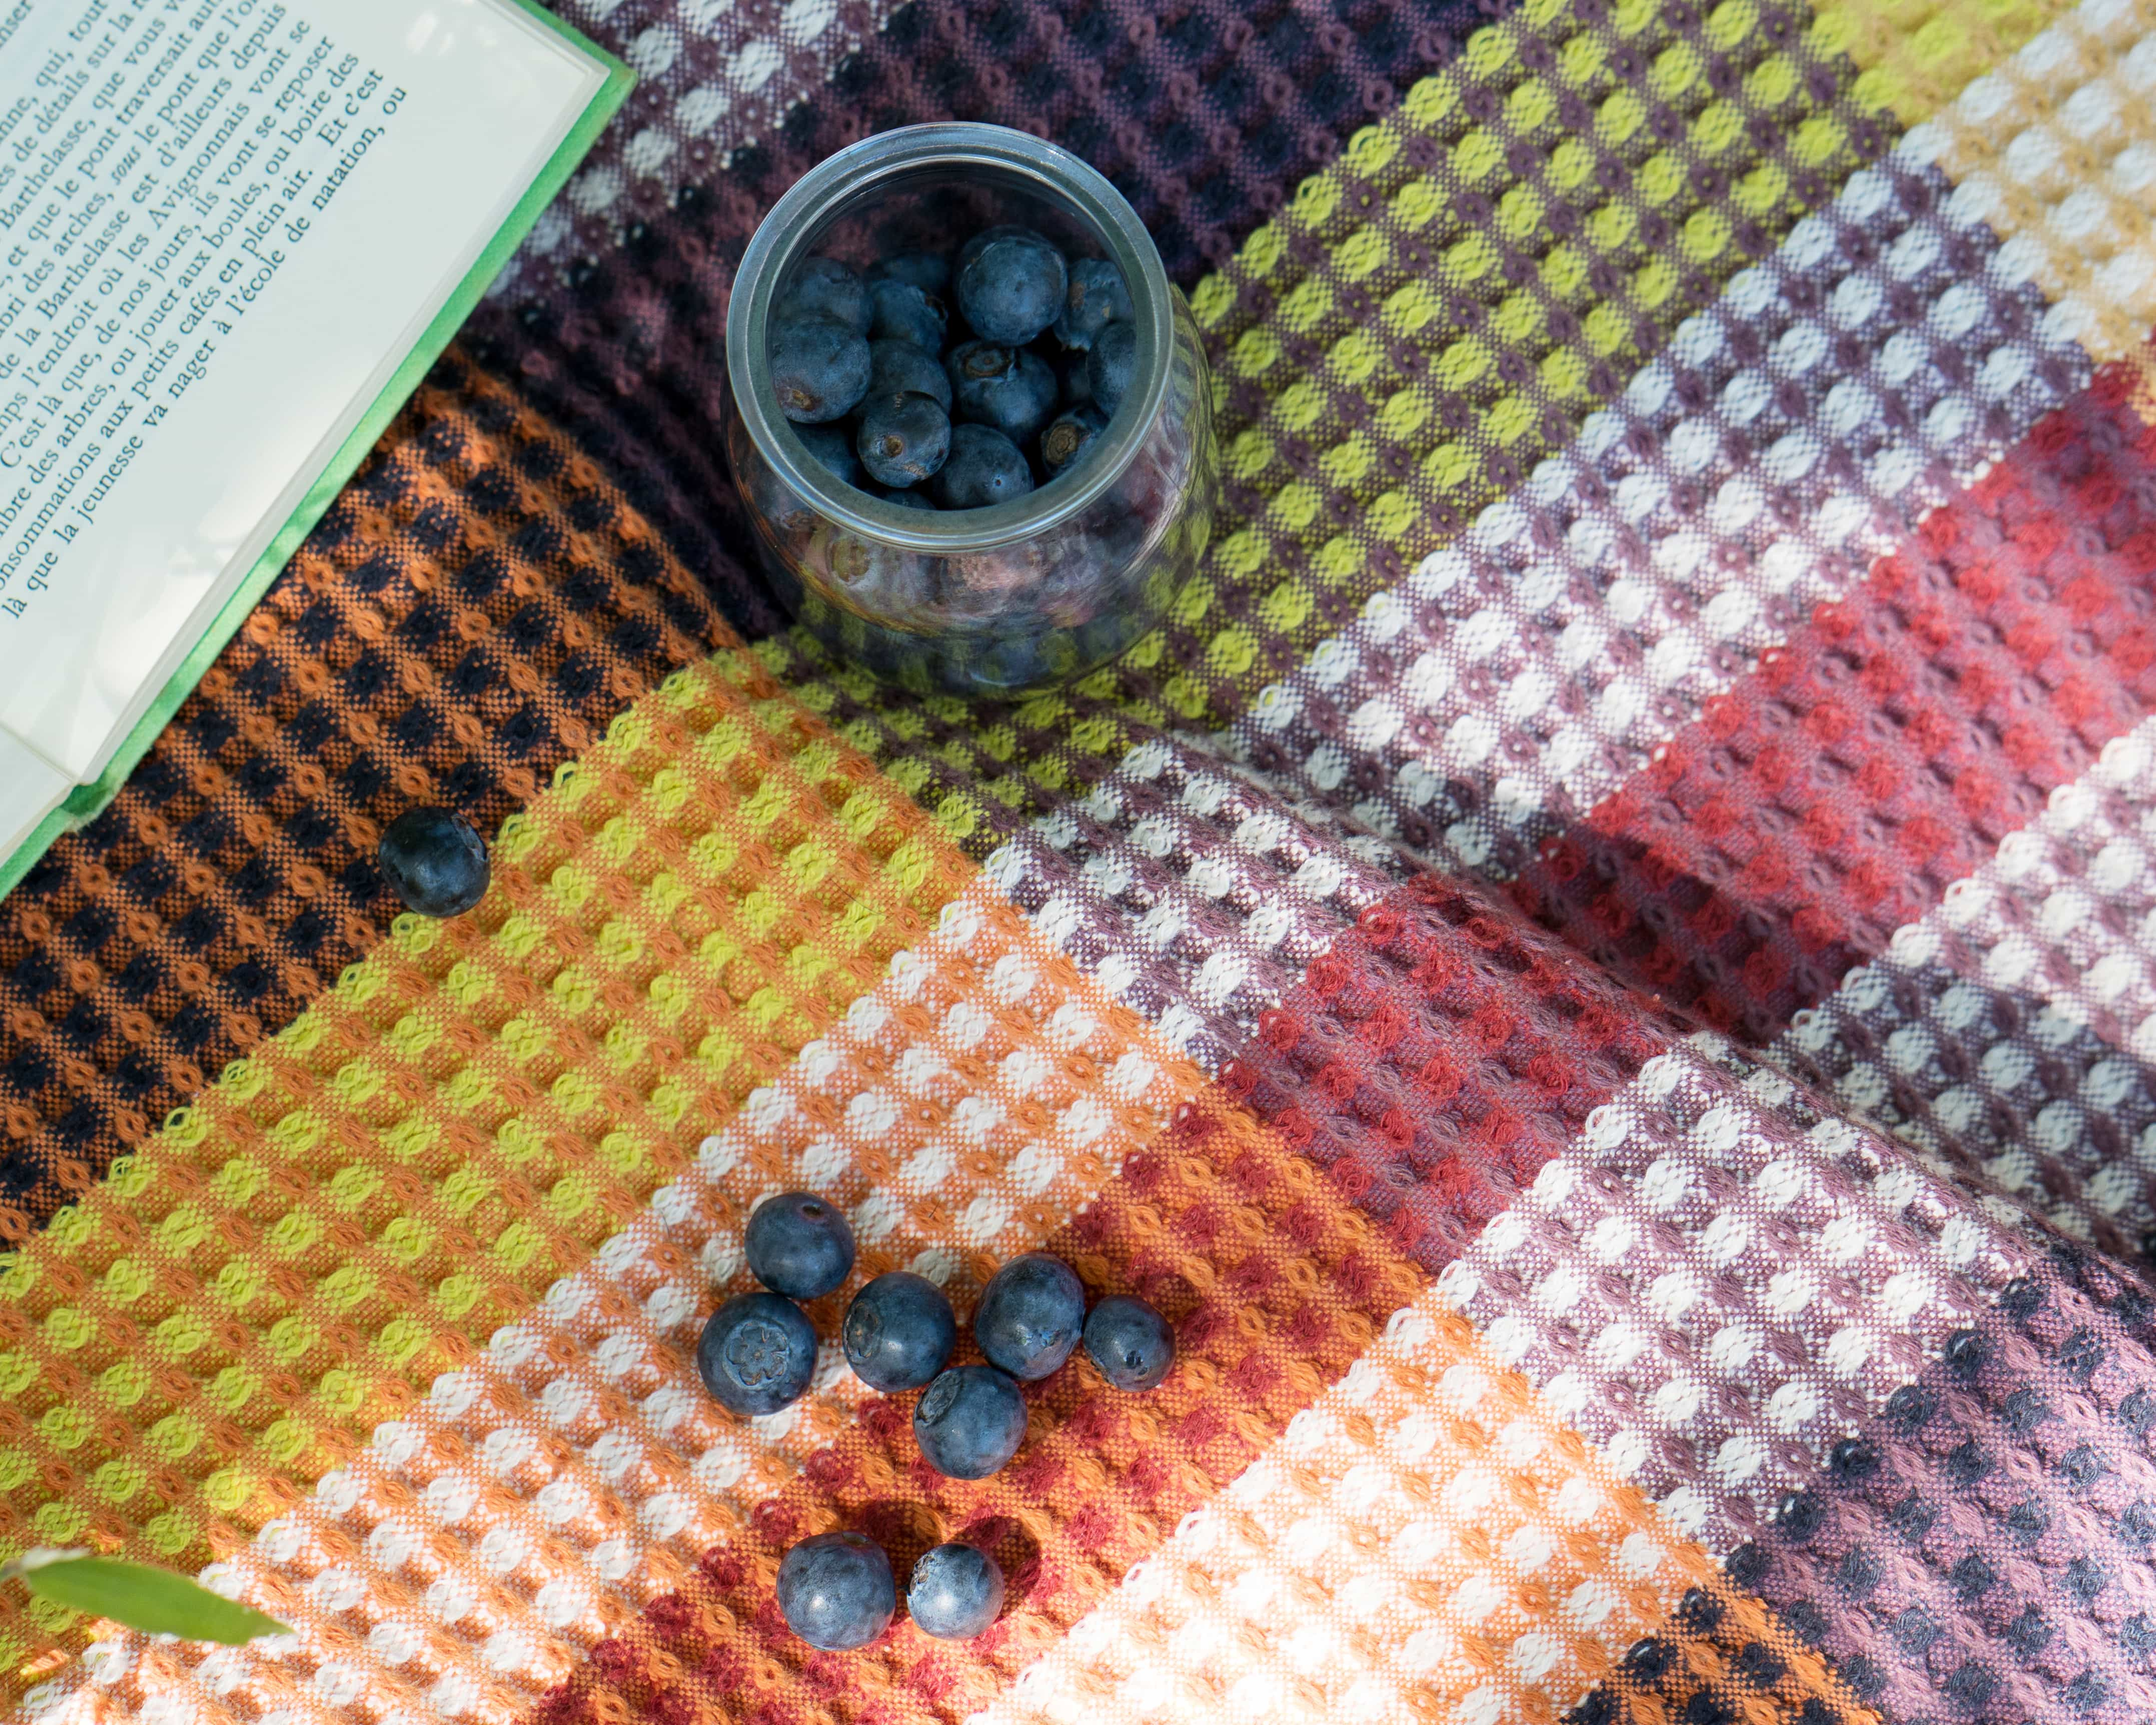 Blueberries and a book on the Mungo Vrou-Vrou blanket. A springtime picnic scene